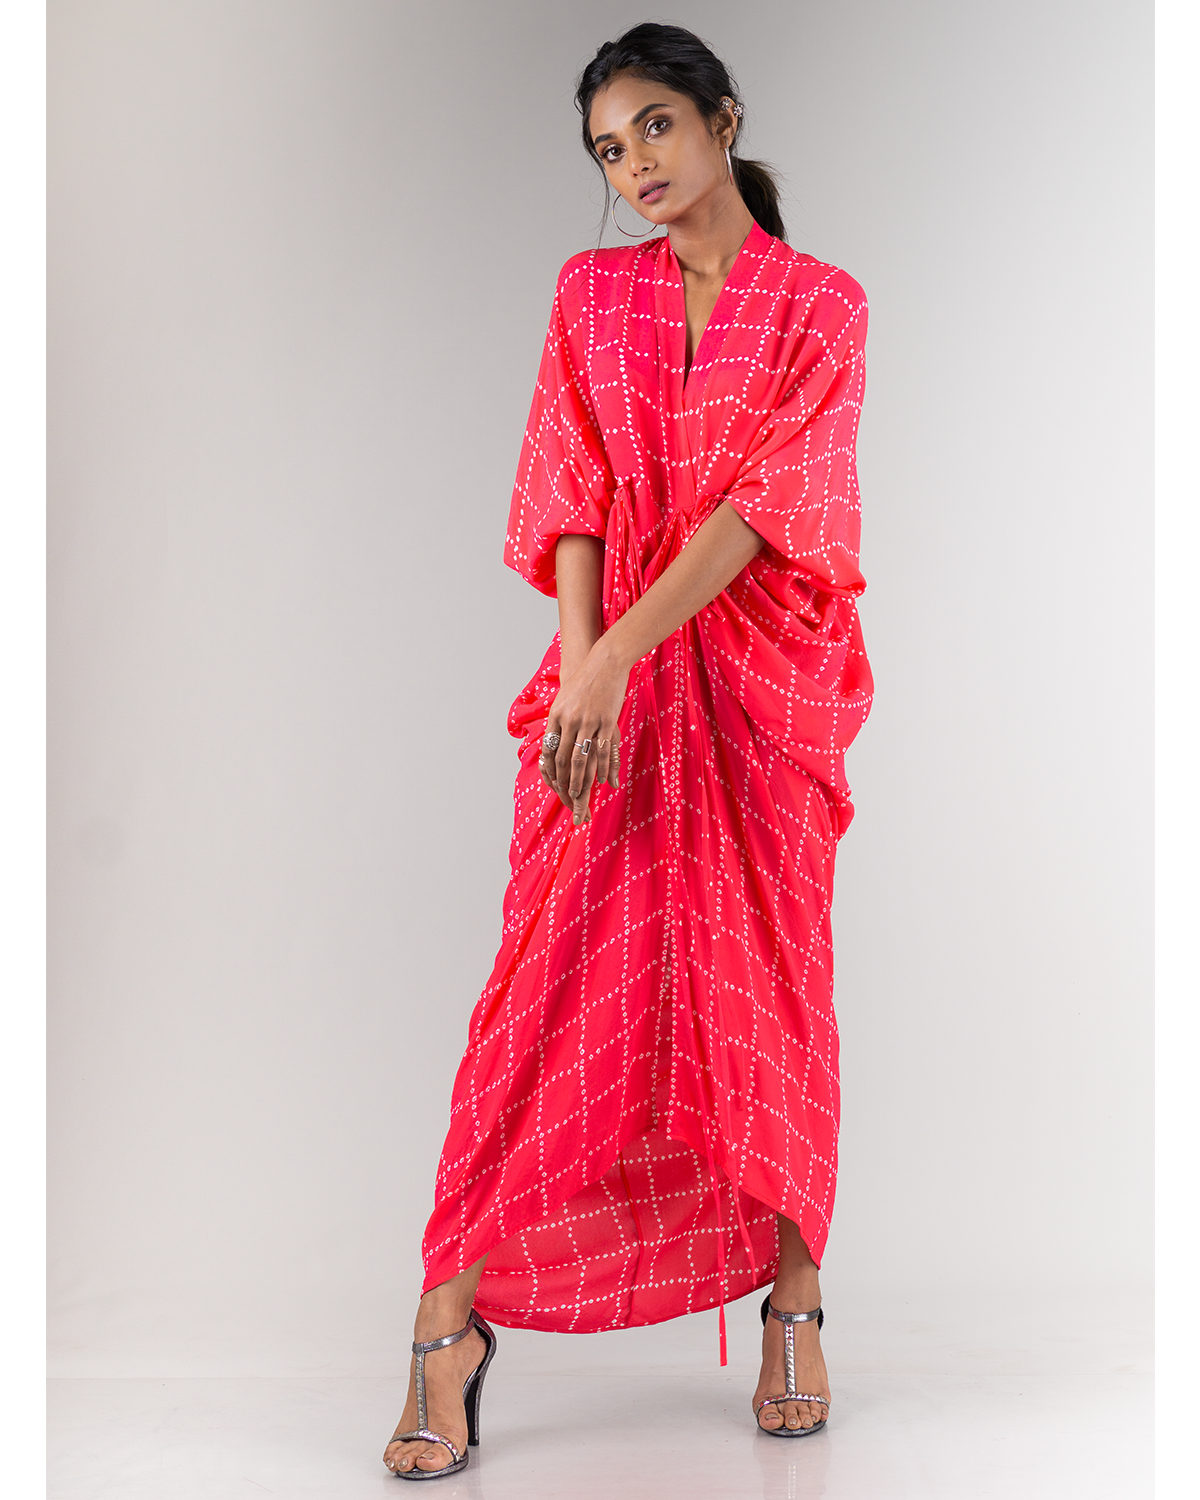 Coral Bandhani Kite Dress